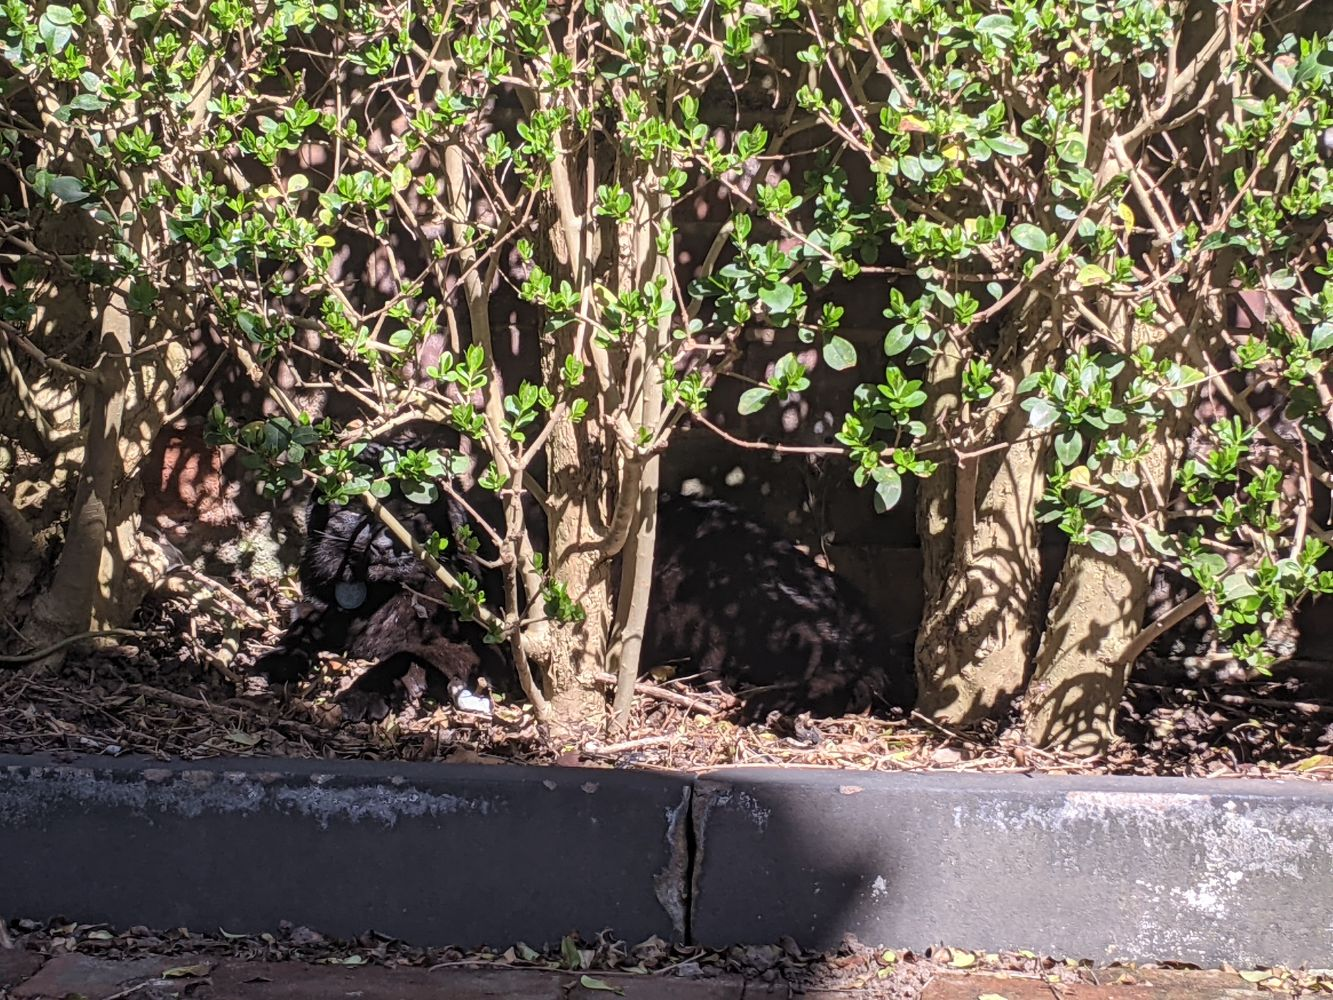 A bush, with a black cat ever so slightly visible in the undergrowth, sleepily looking out from his sun trap